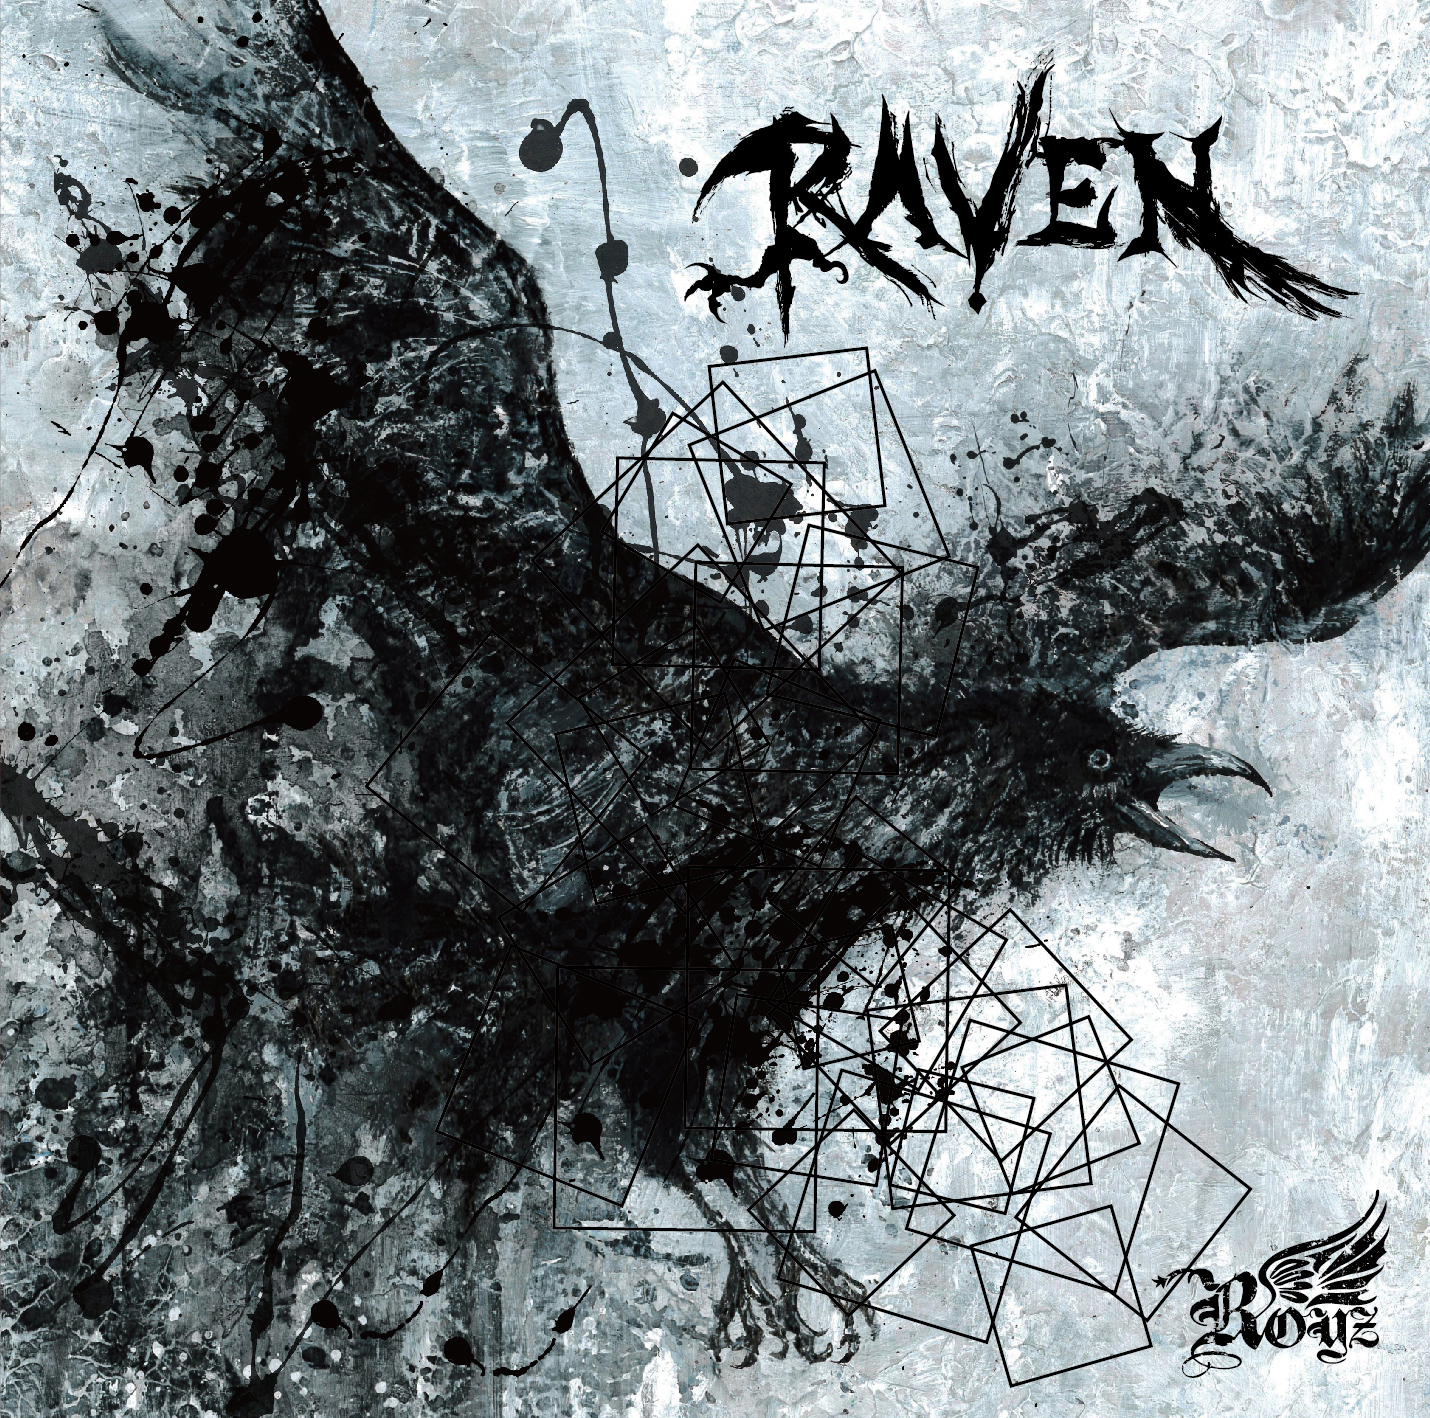 Royz 13th maxi single 「RAVEN」Dtype